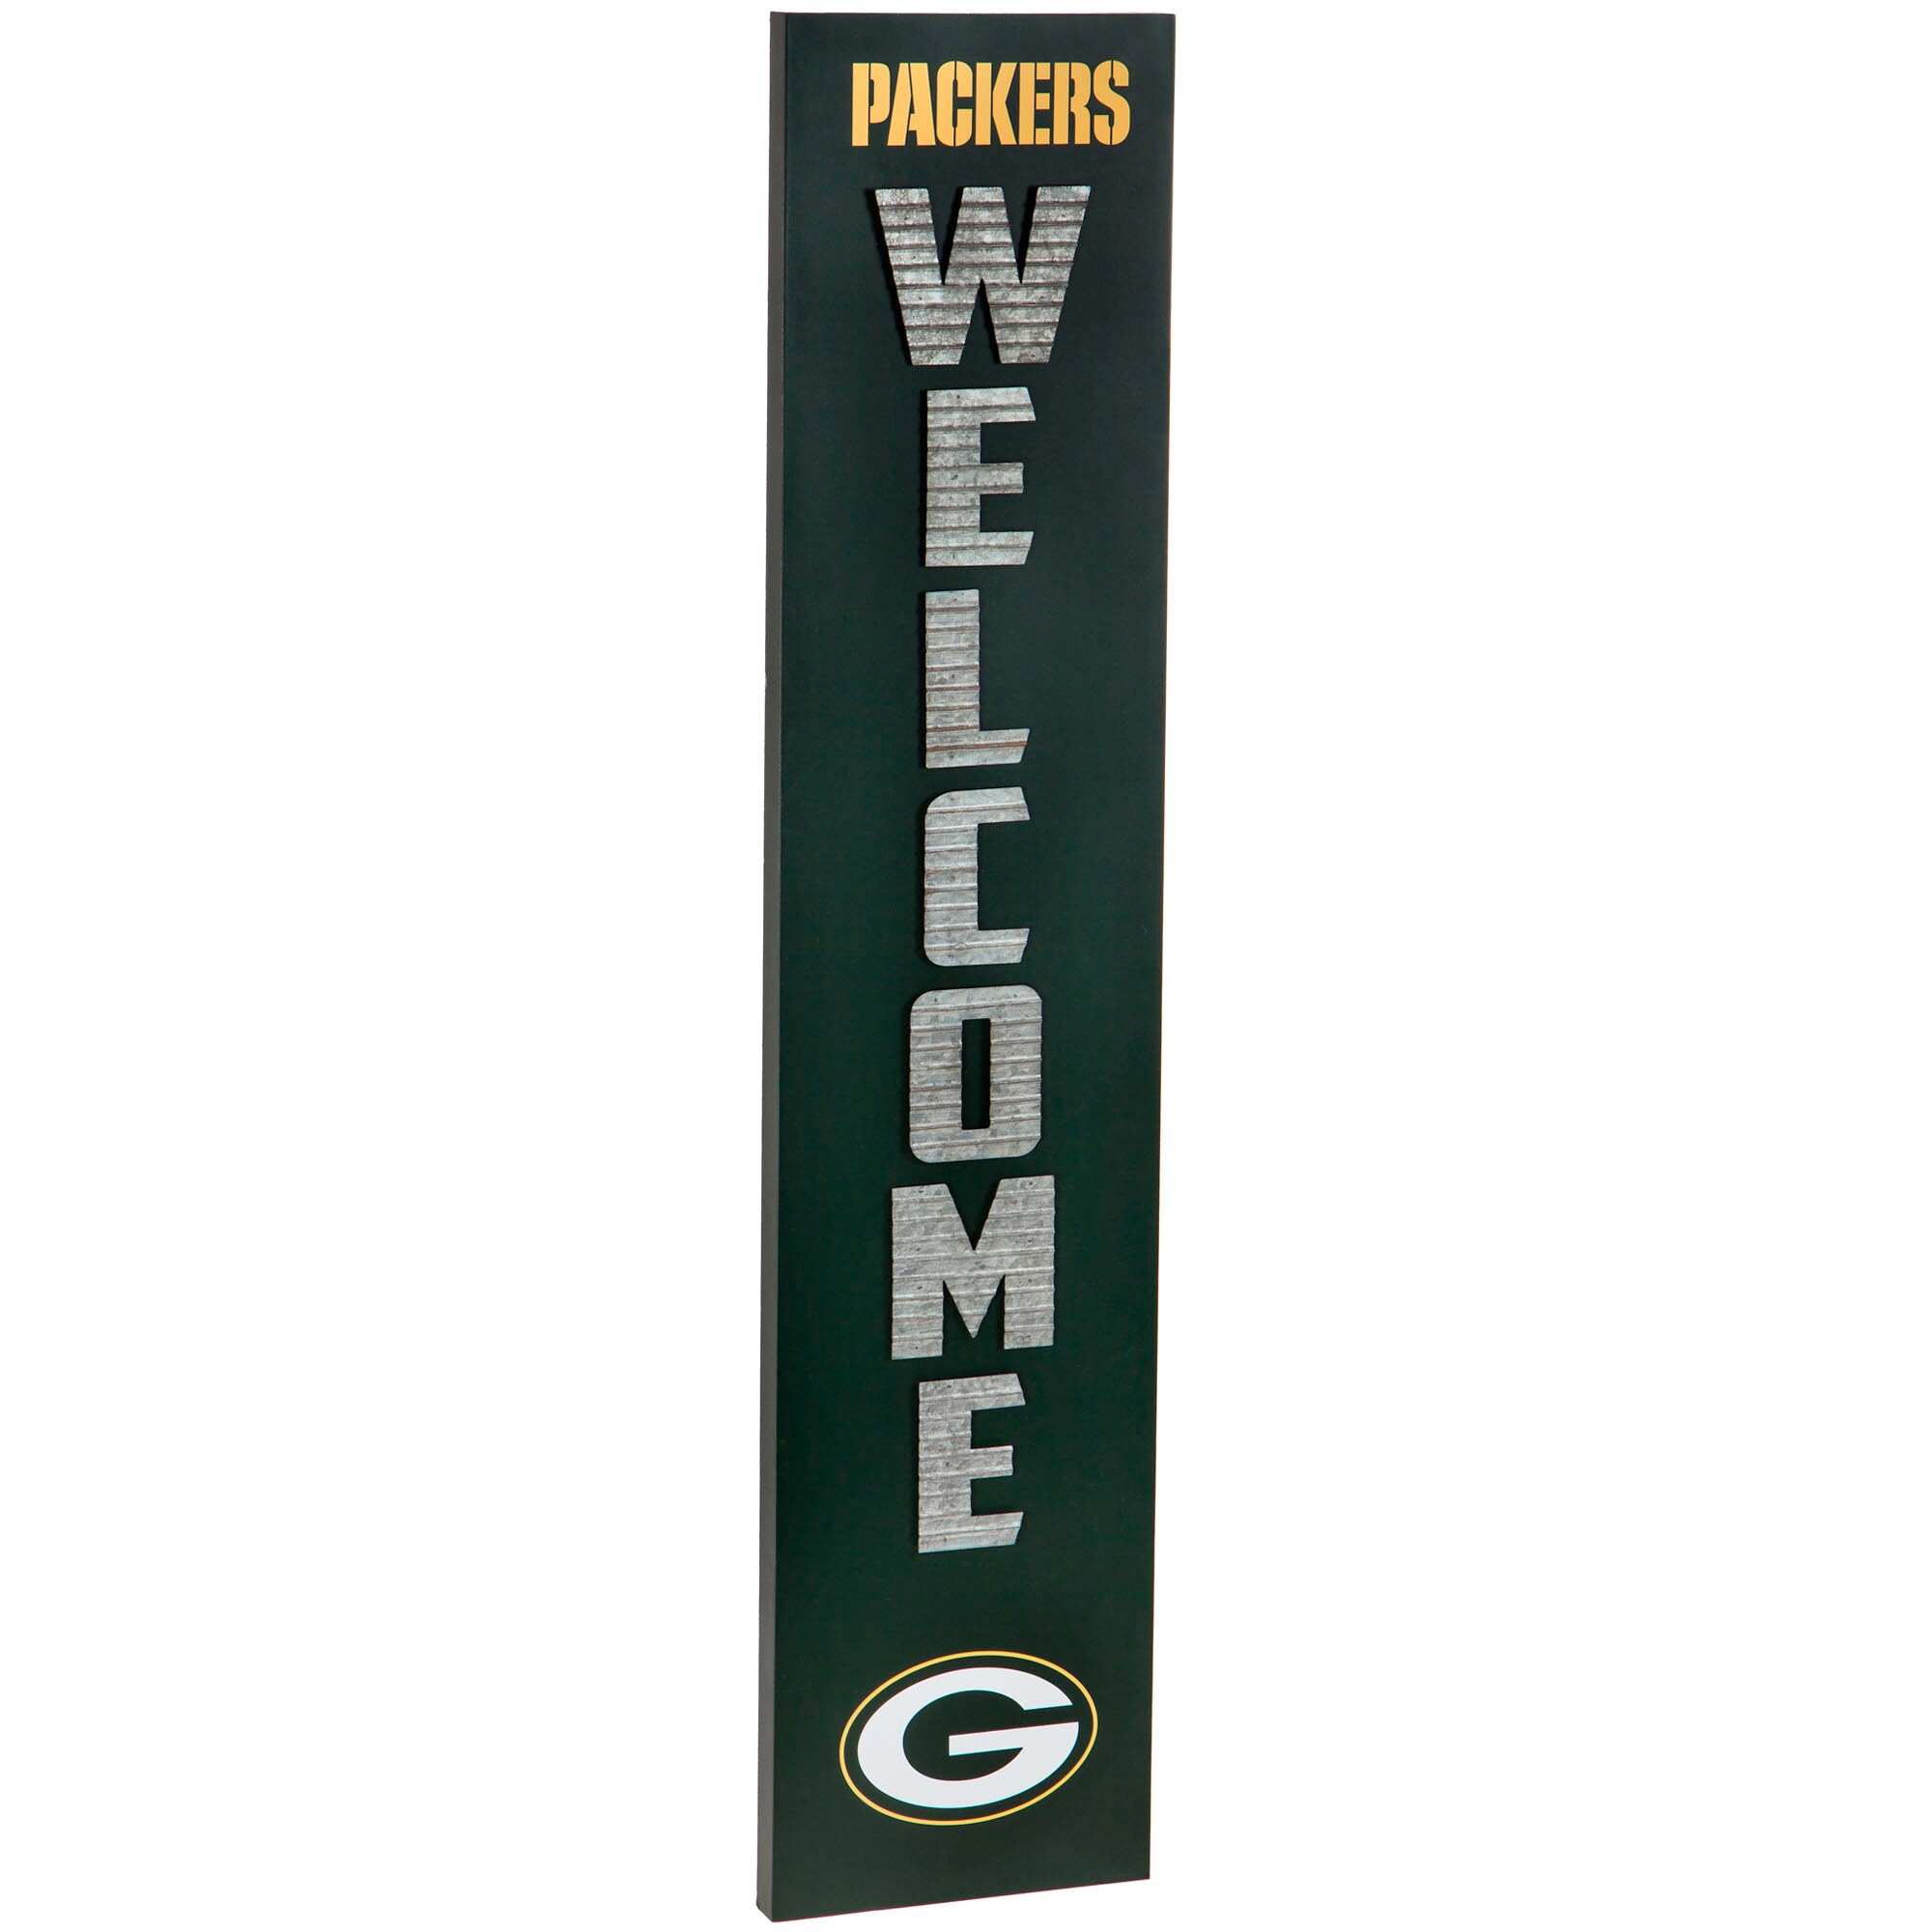 Green Bay Packers Porch Leaner